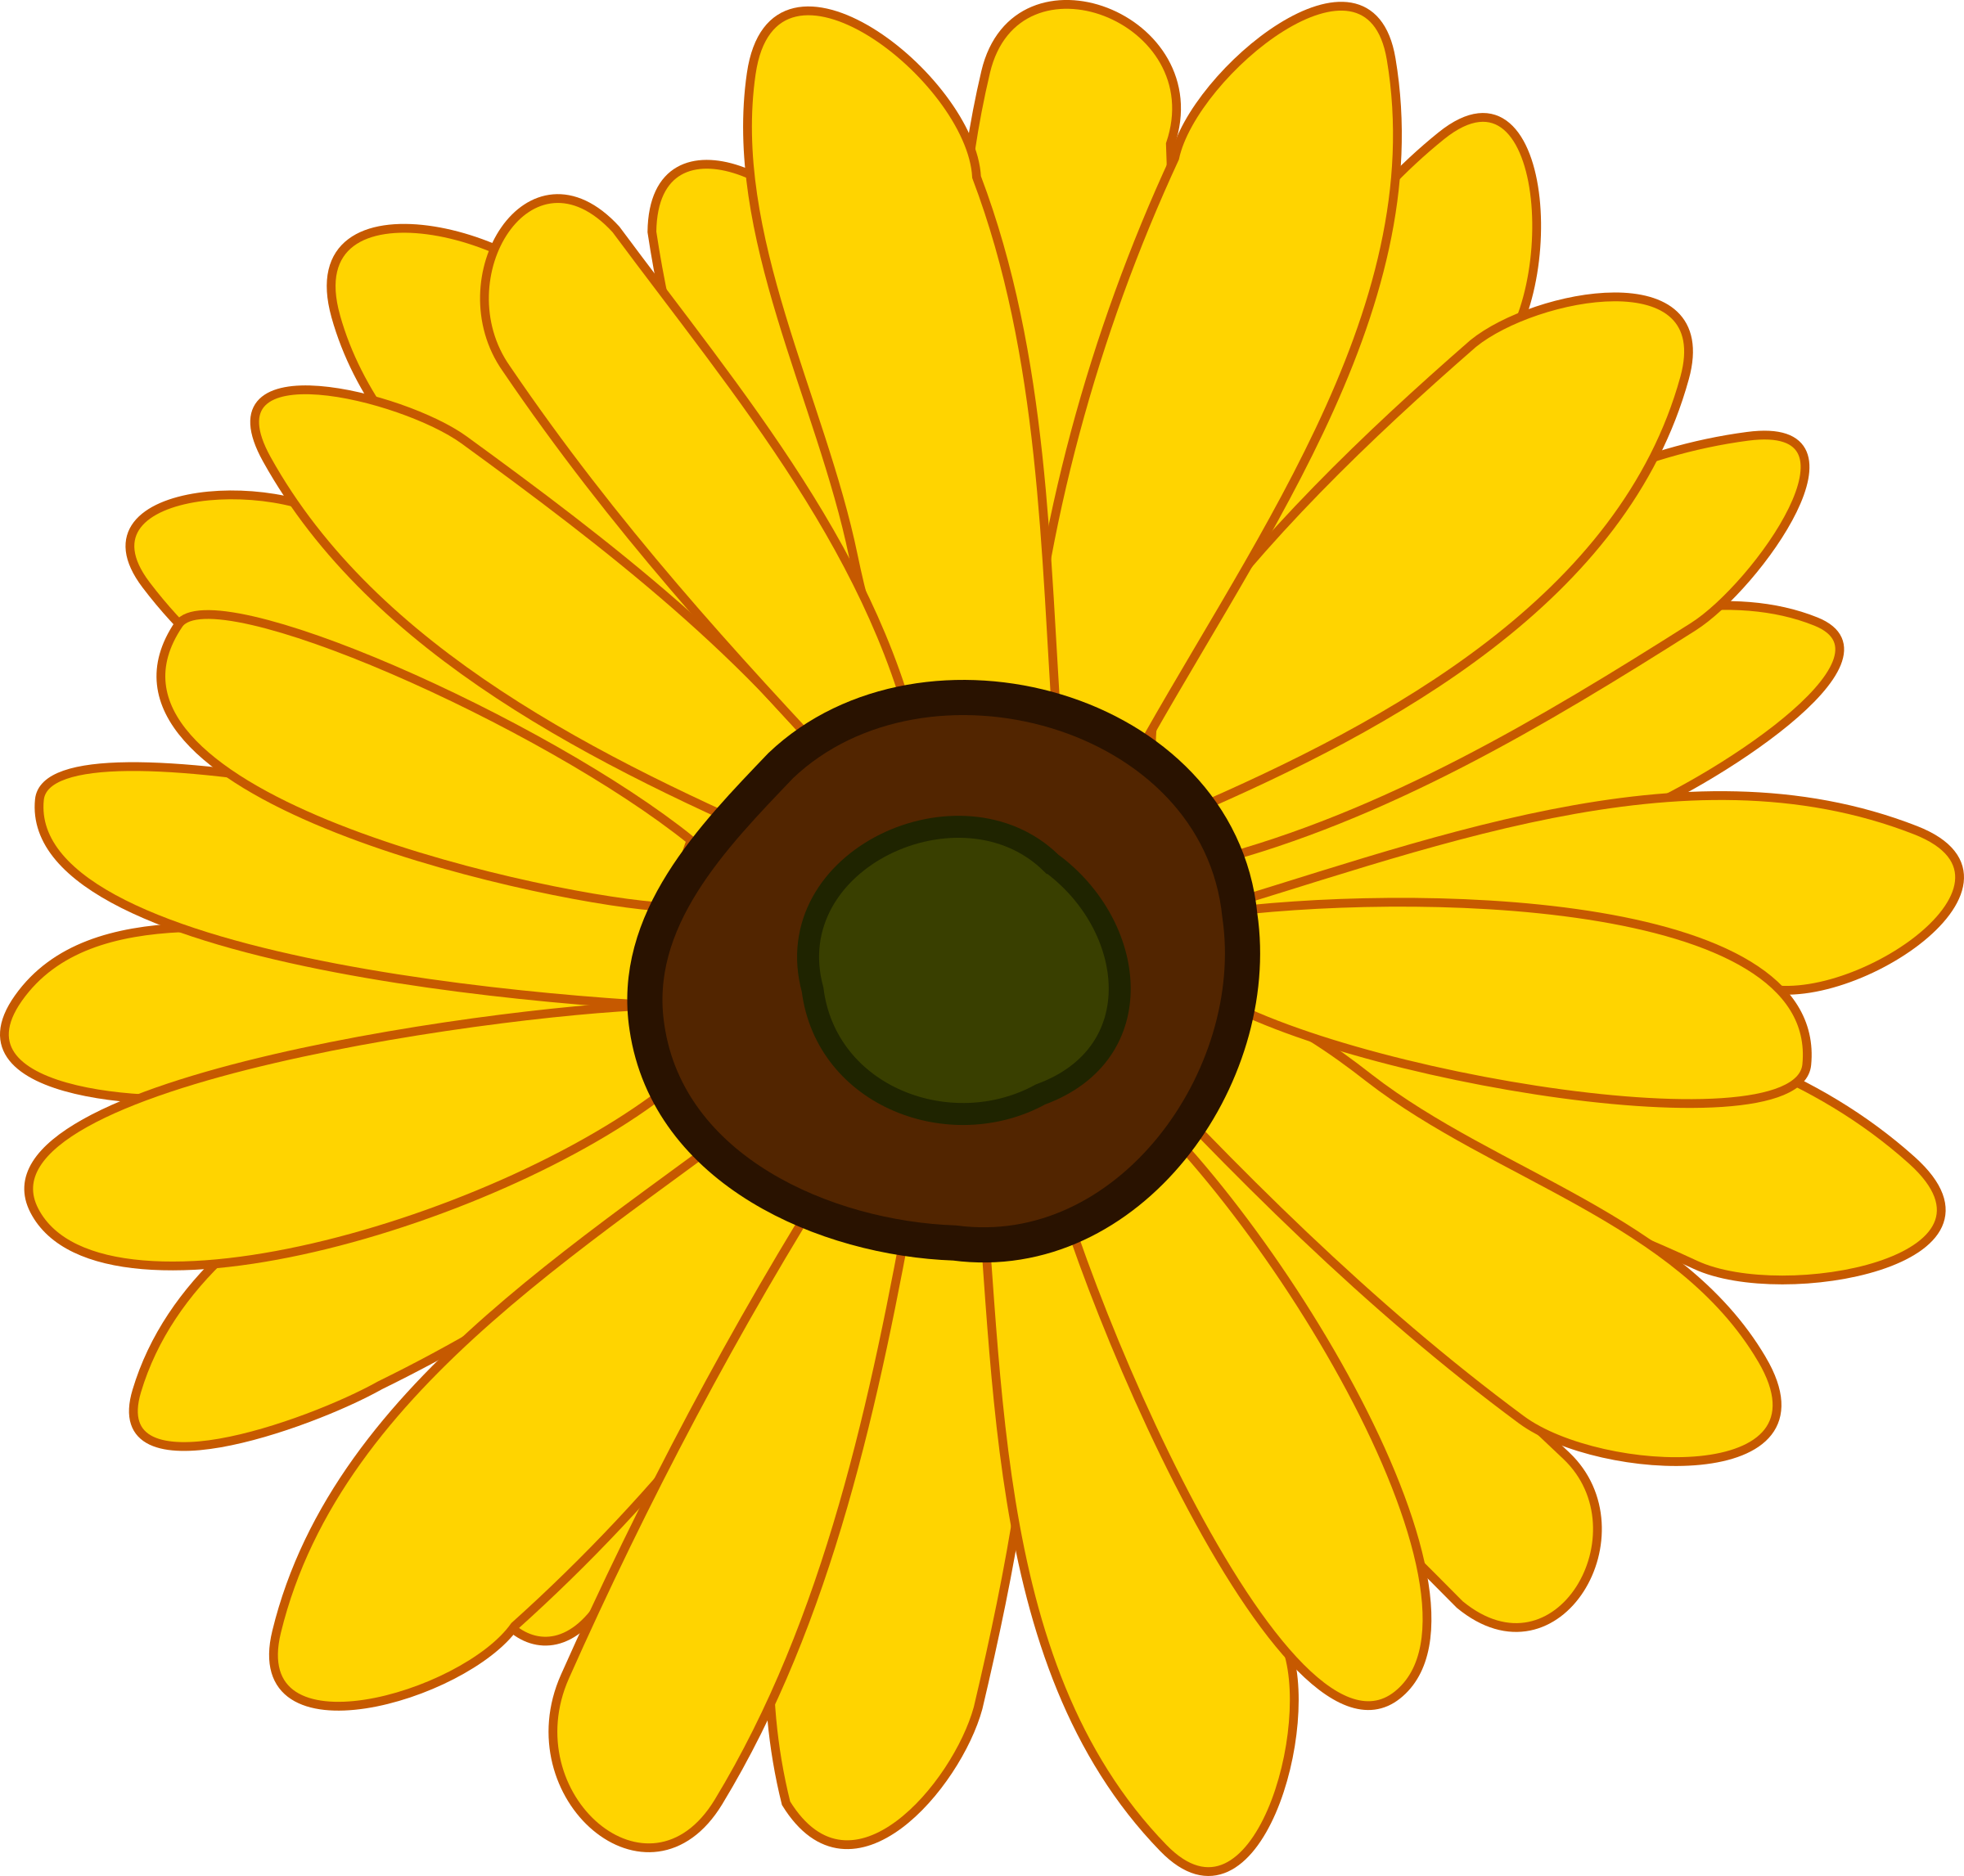 Sunflower by laobc